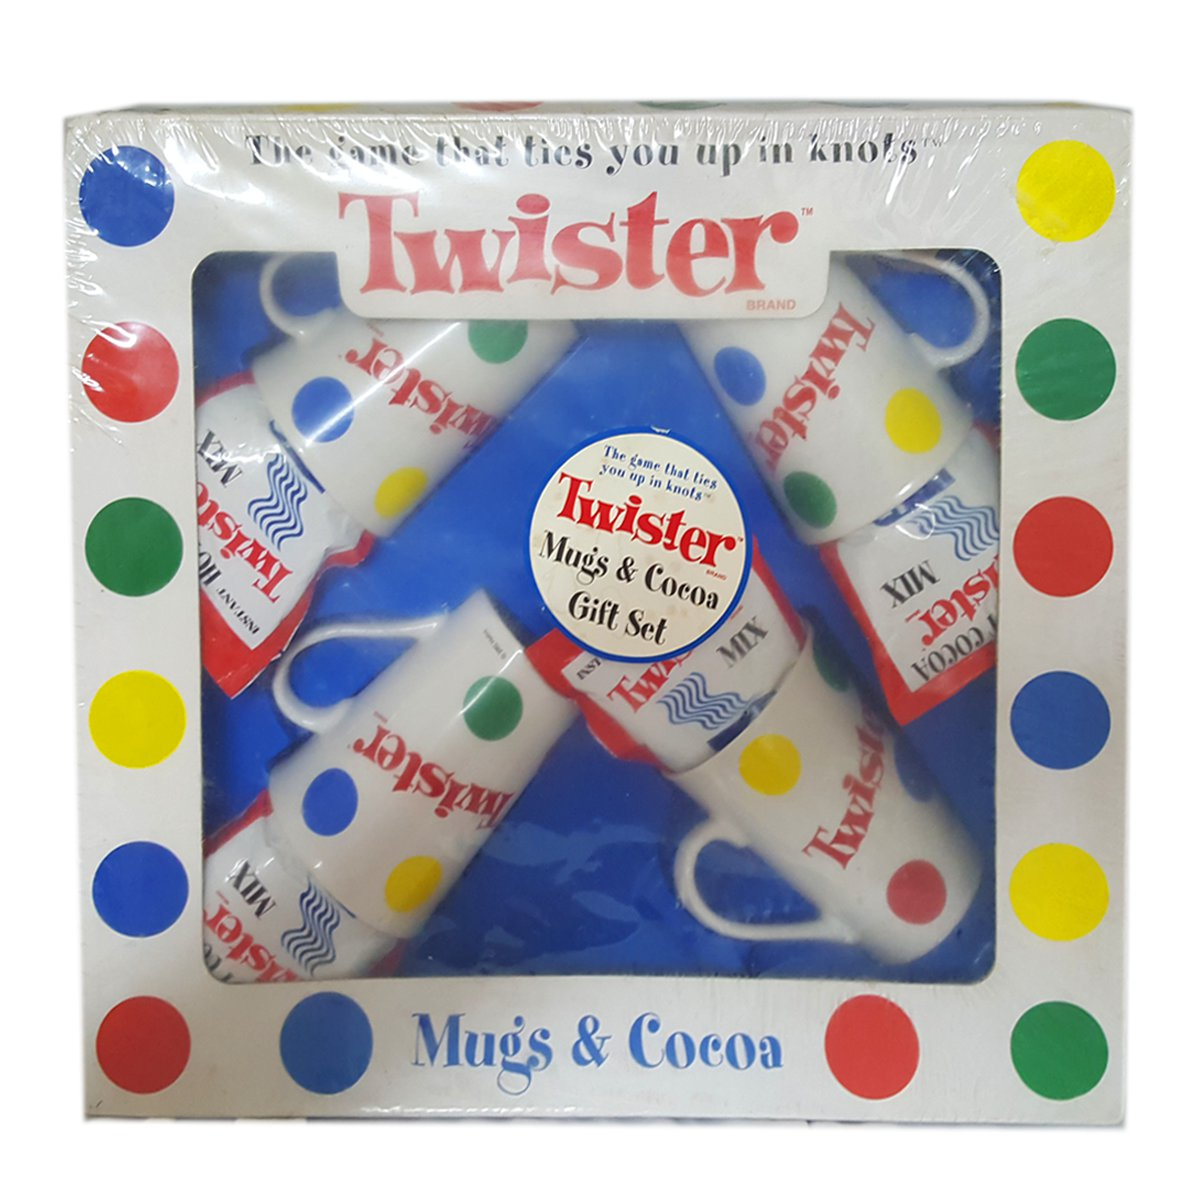 Rare 2002 Hasbro Twister Game Mugs & Cocoa Gift Set No. 4918 by Hasbro